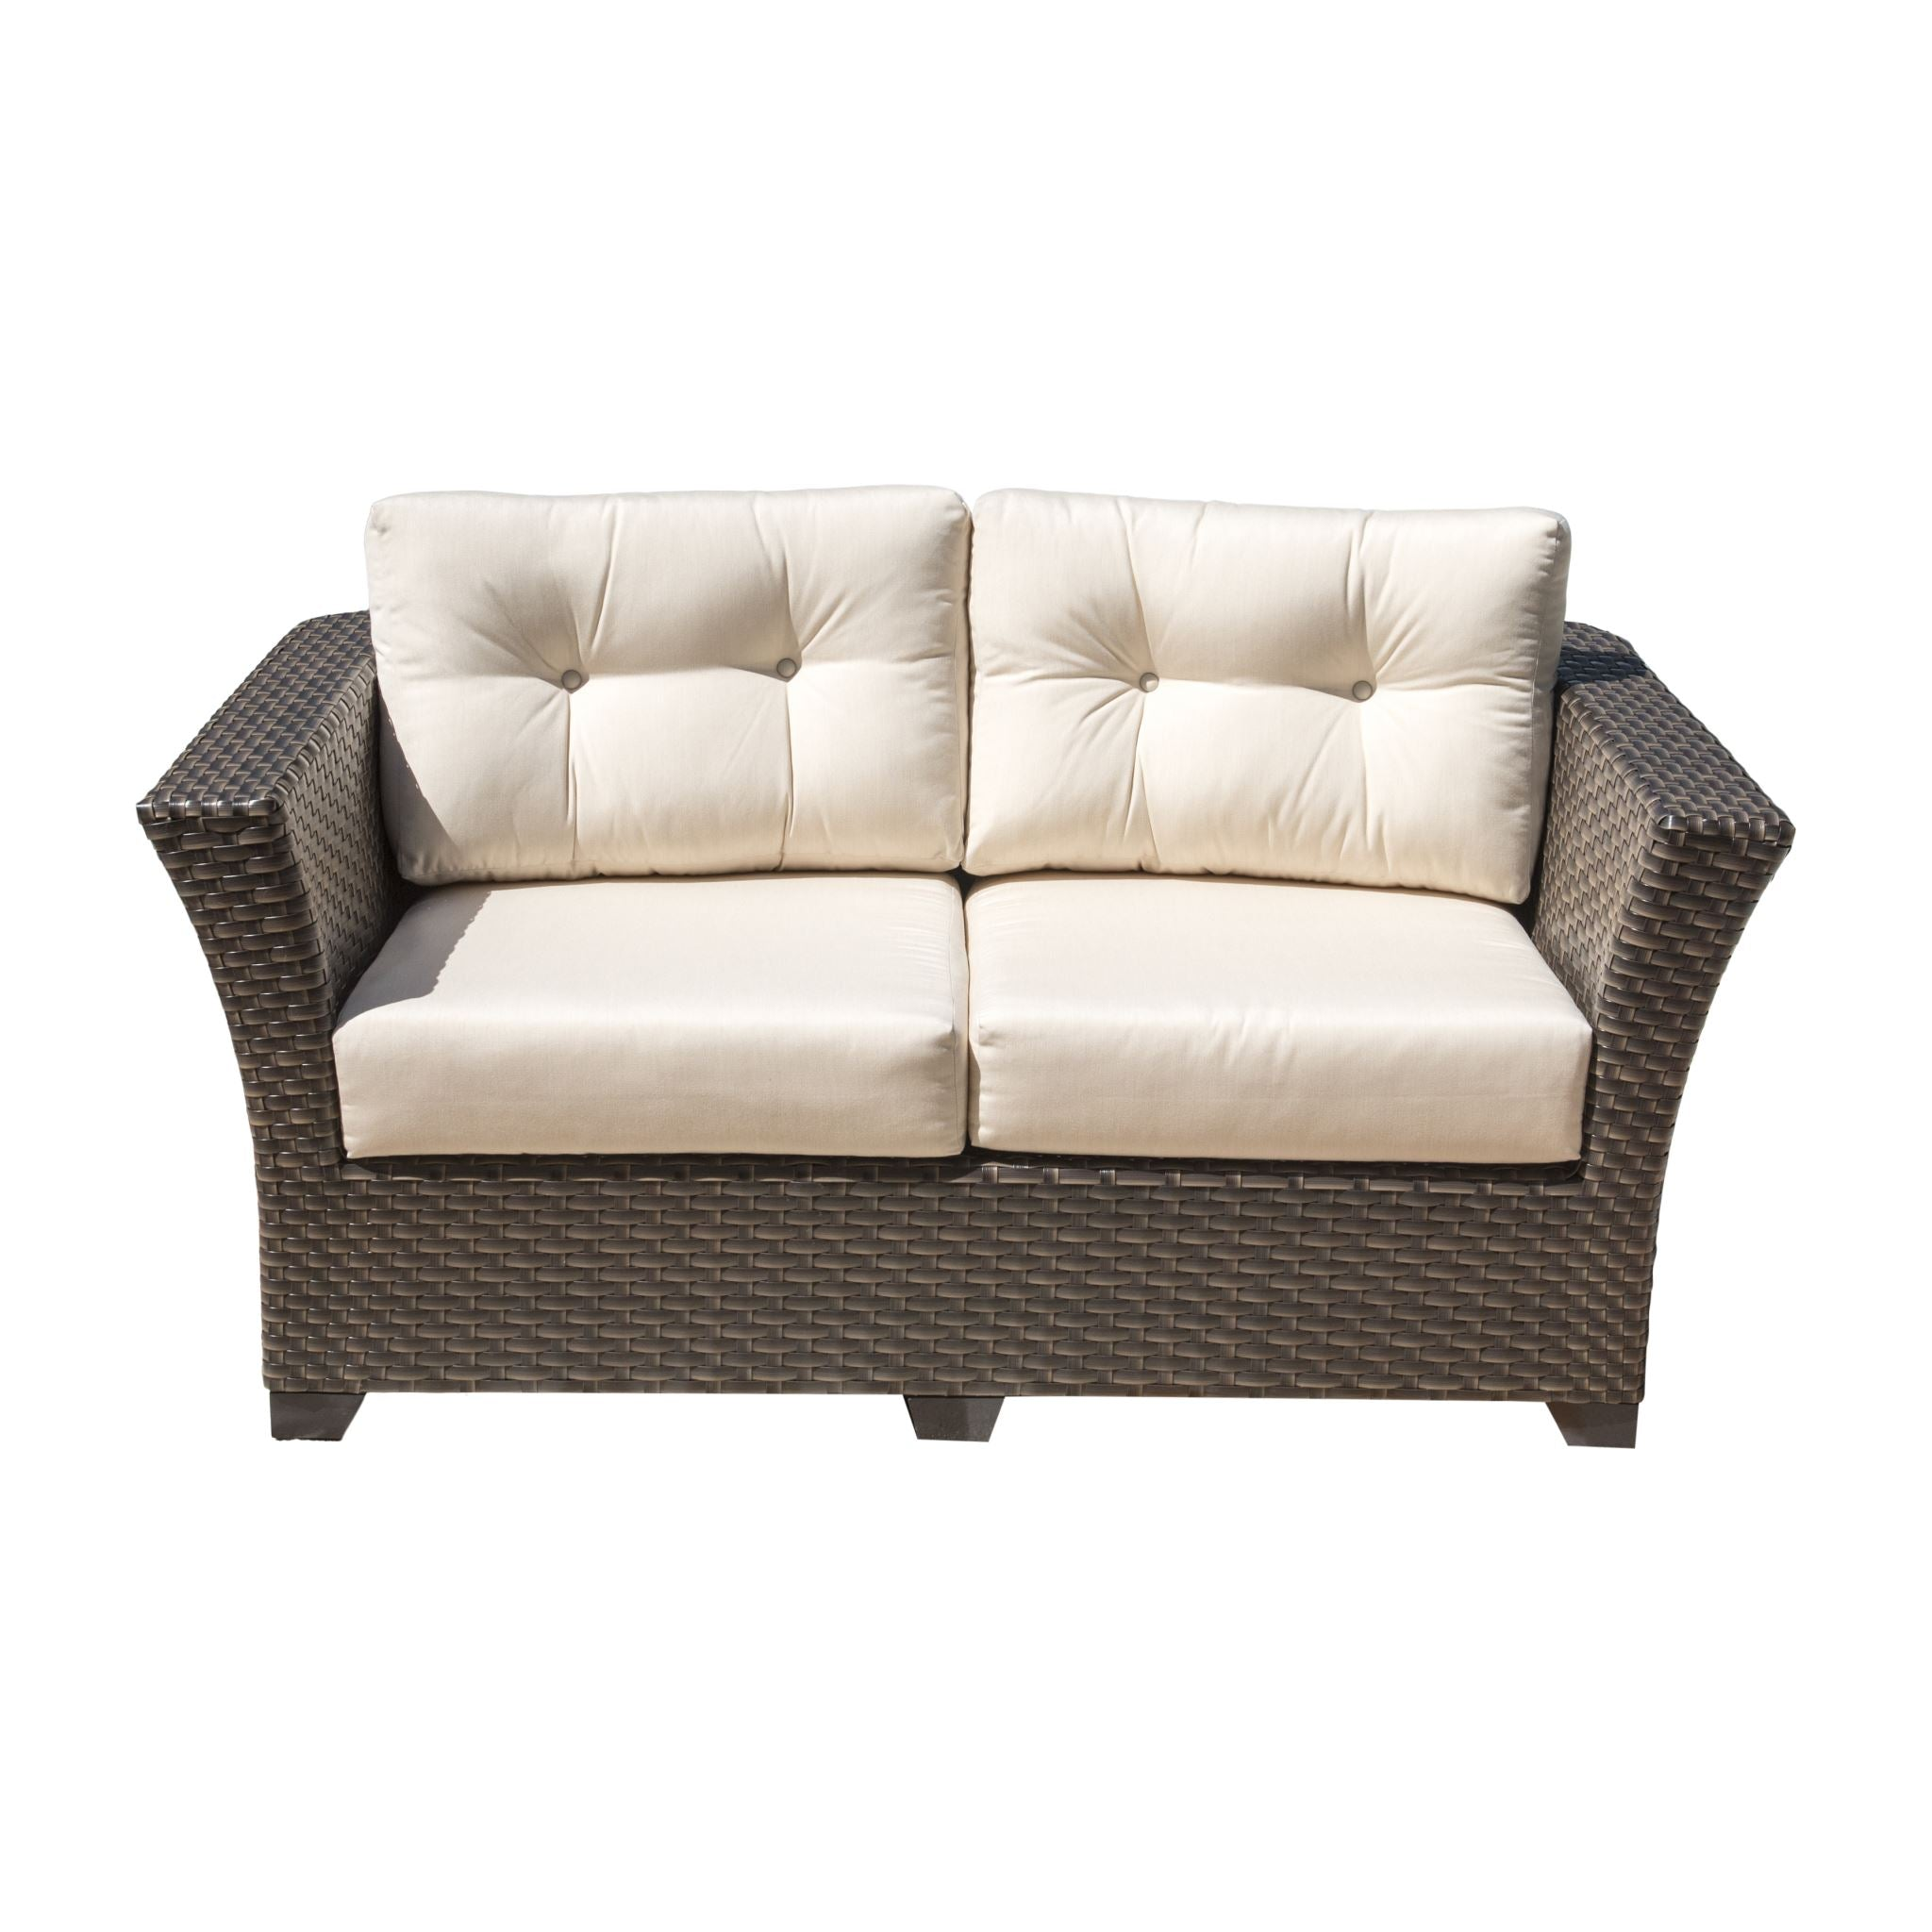 menagerie reviews loveseat patio with cushions outdoor wayfair pdx world mosca